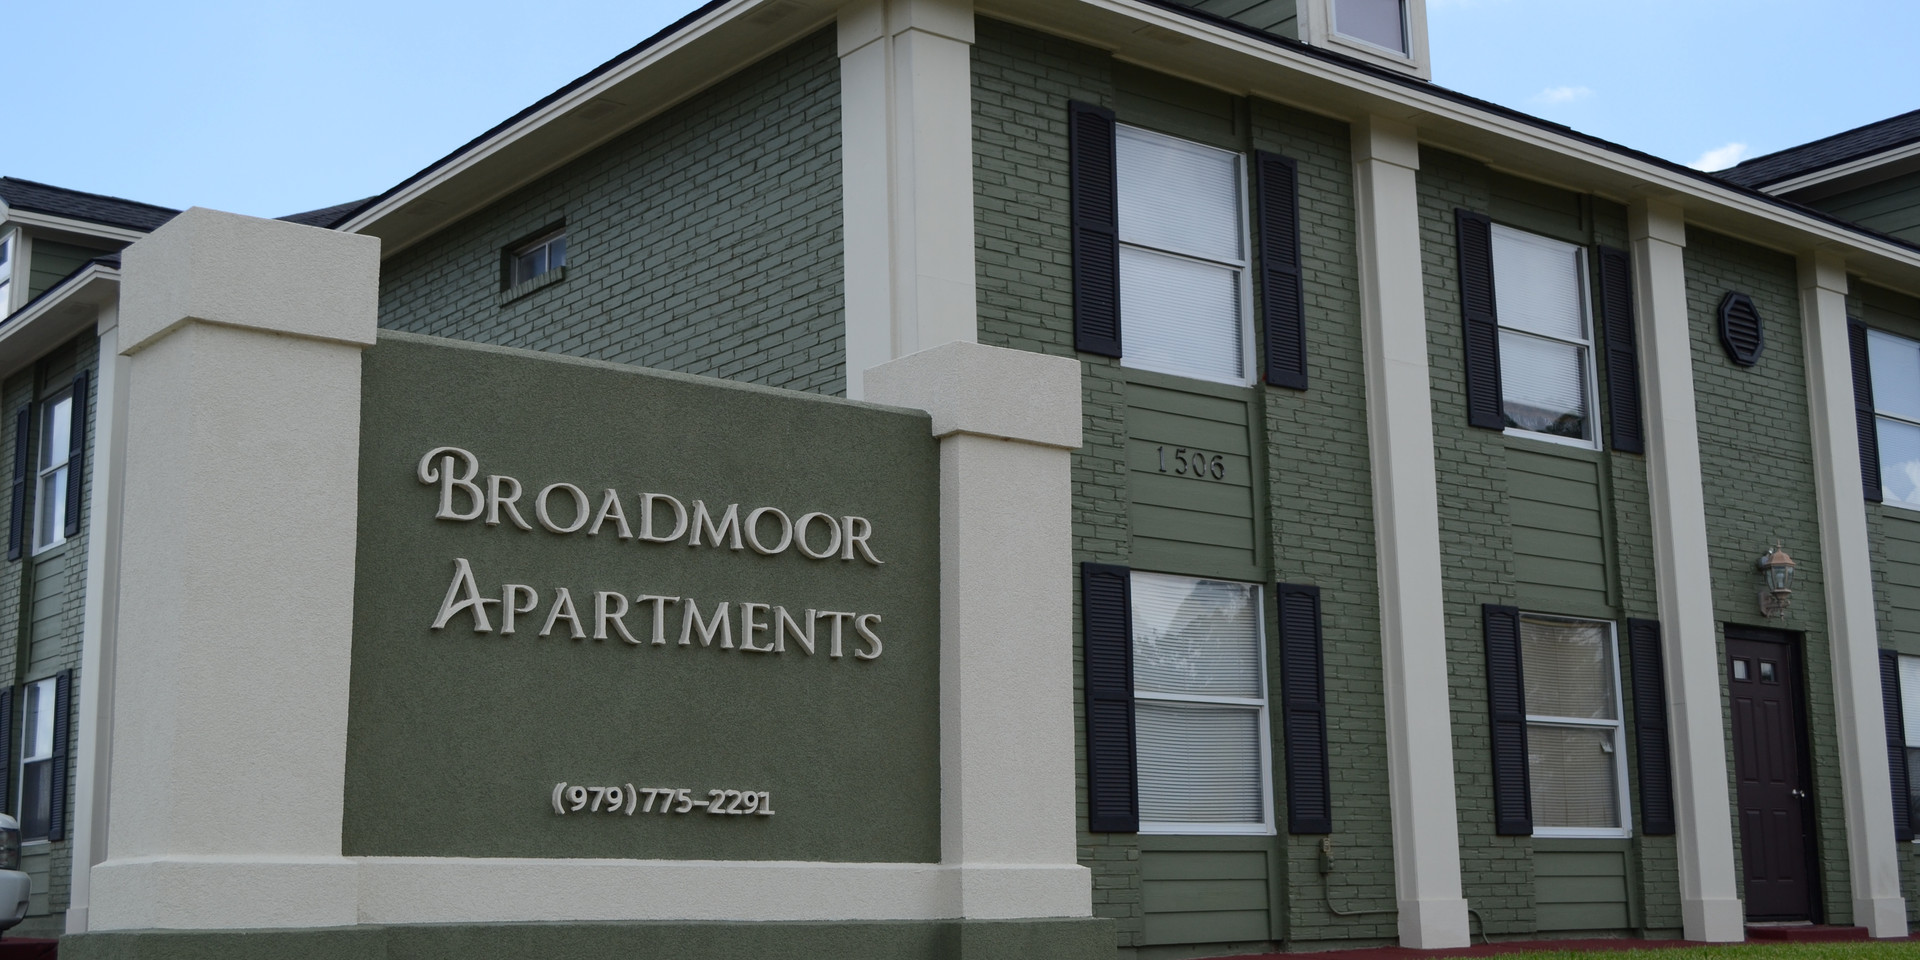 Broadmoor Apartments